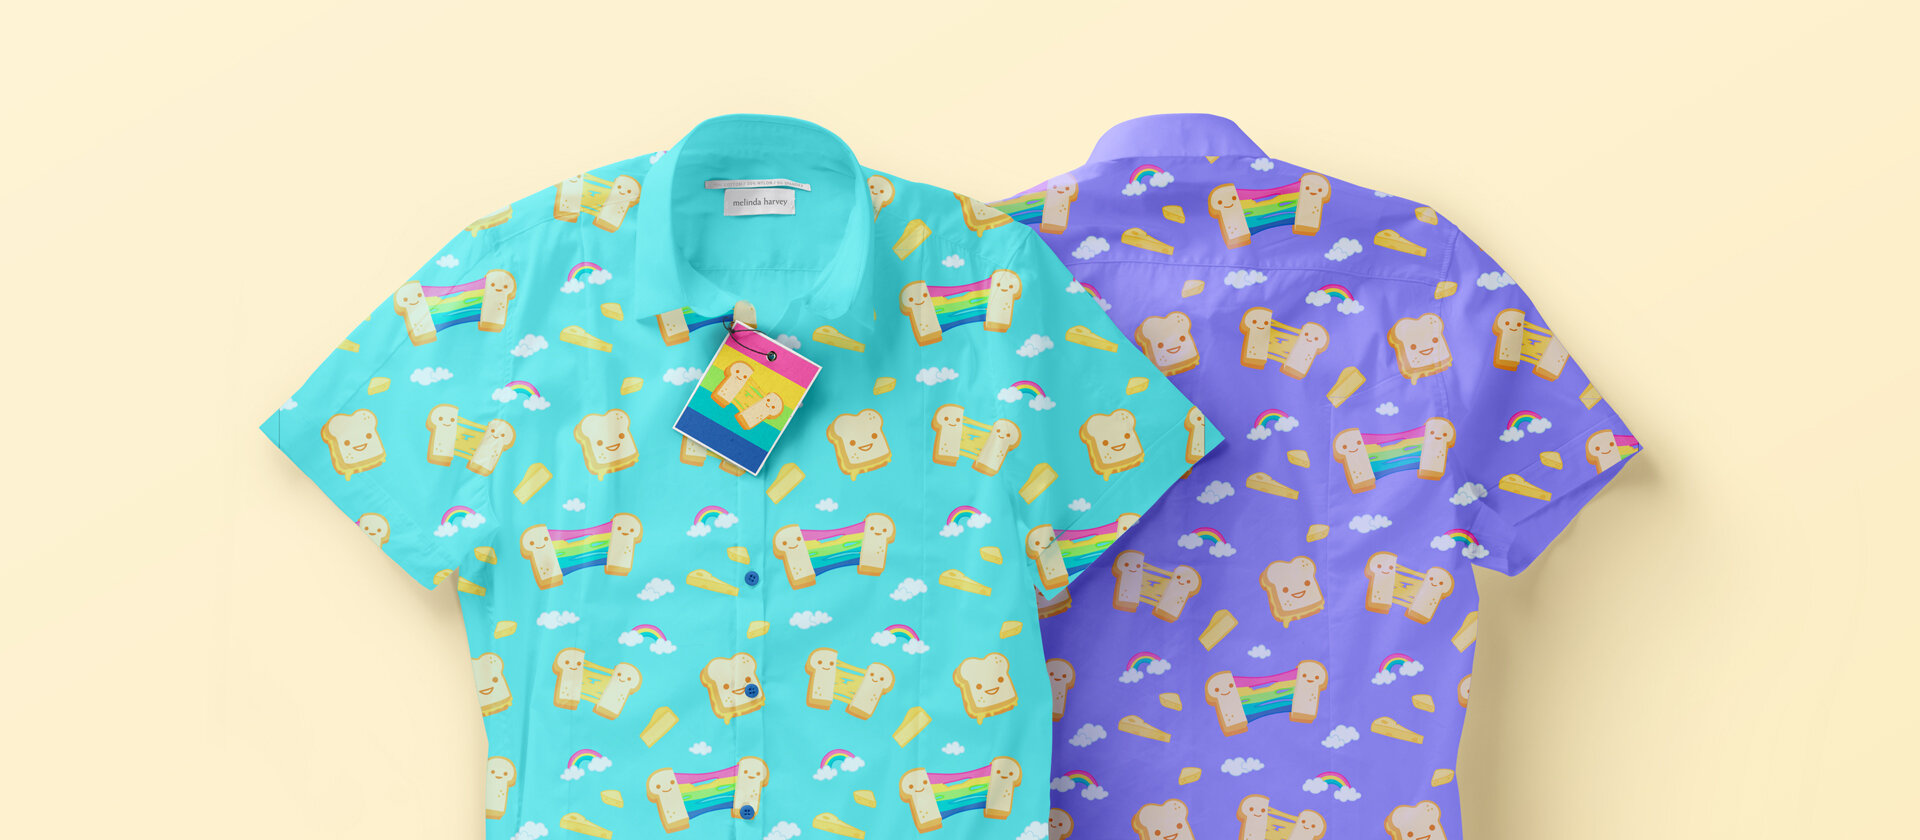 Shirt pattern designs - day and night versions.